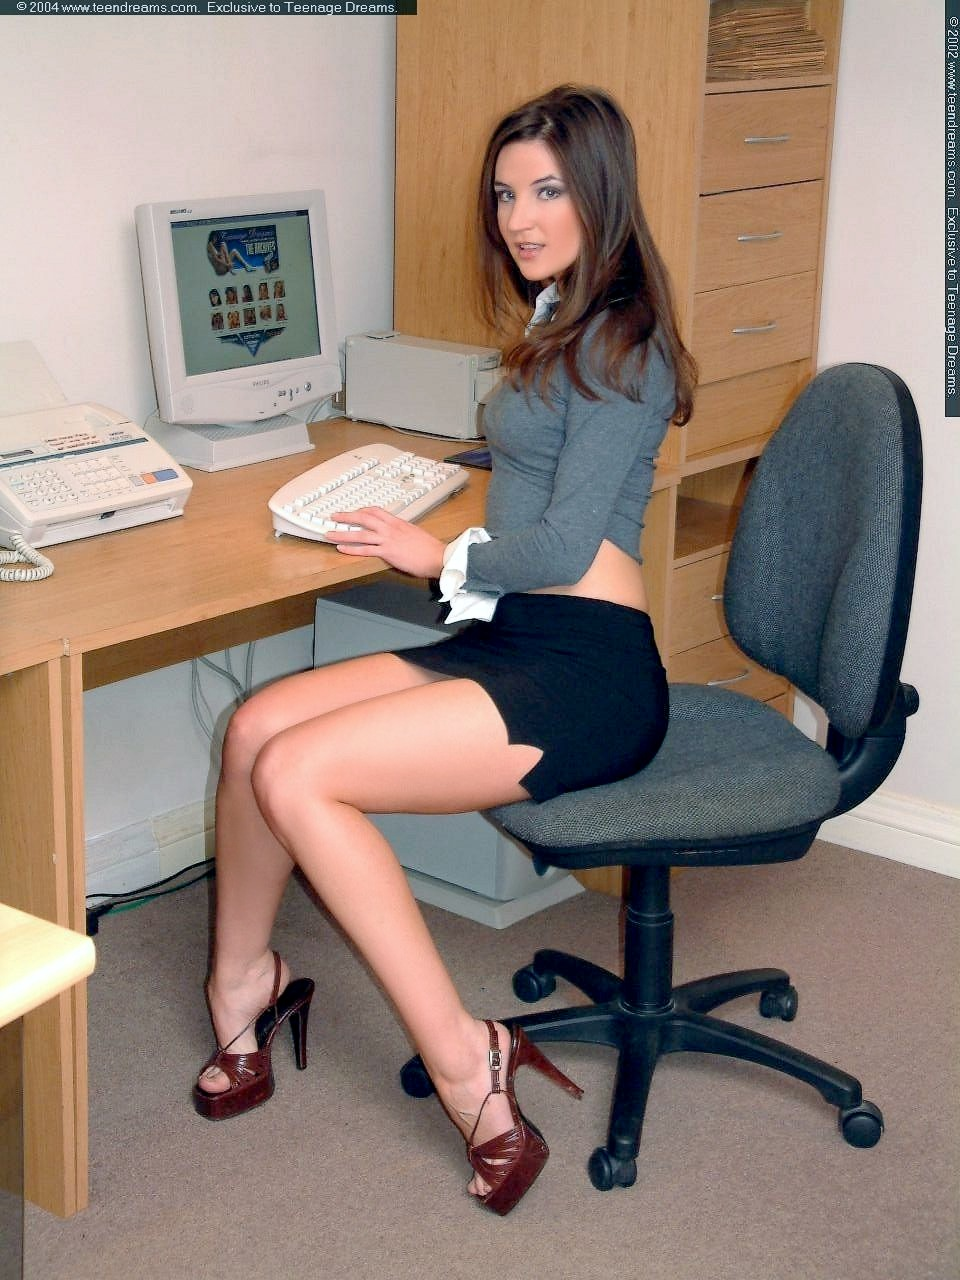 hot office pic. Check 2013 Hot Office Pic O